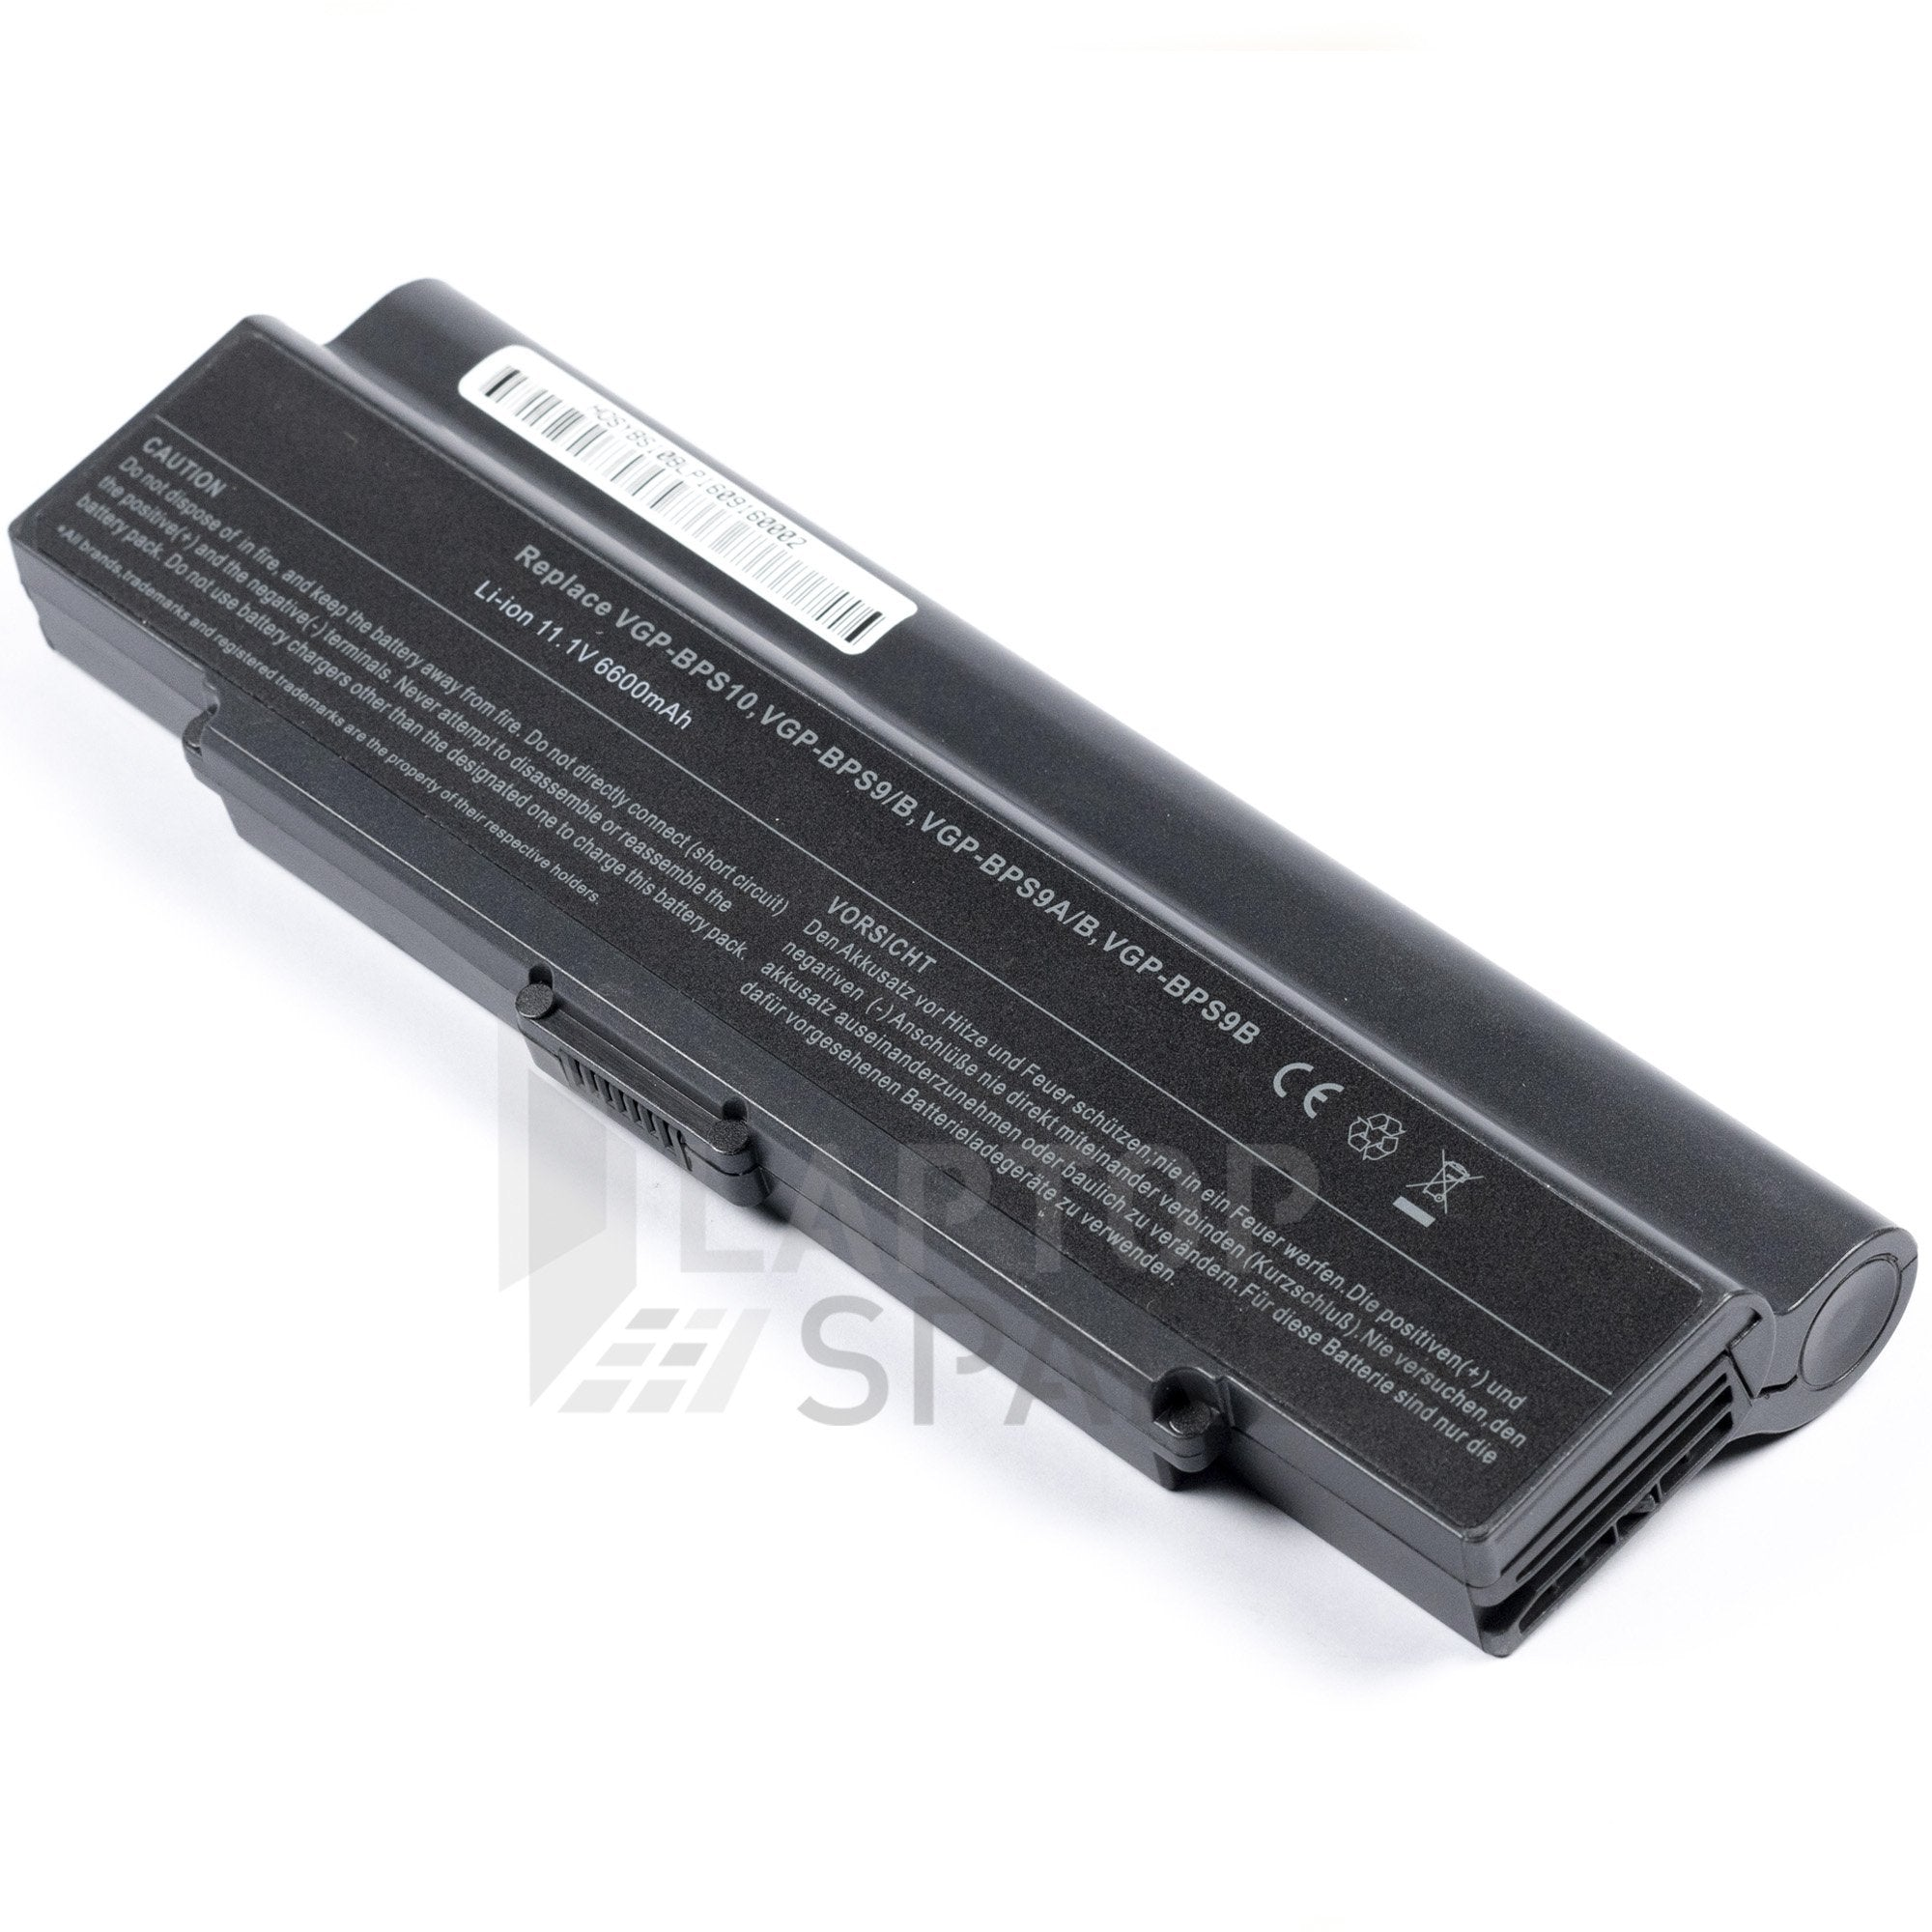 Sony Vaio VGN AR41S AR47G 6600mAh 9 Cell Battery